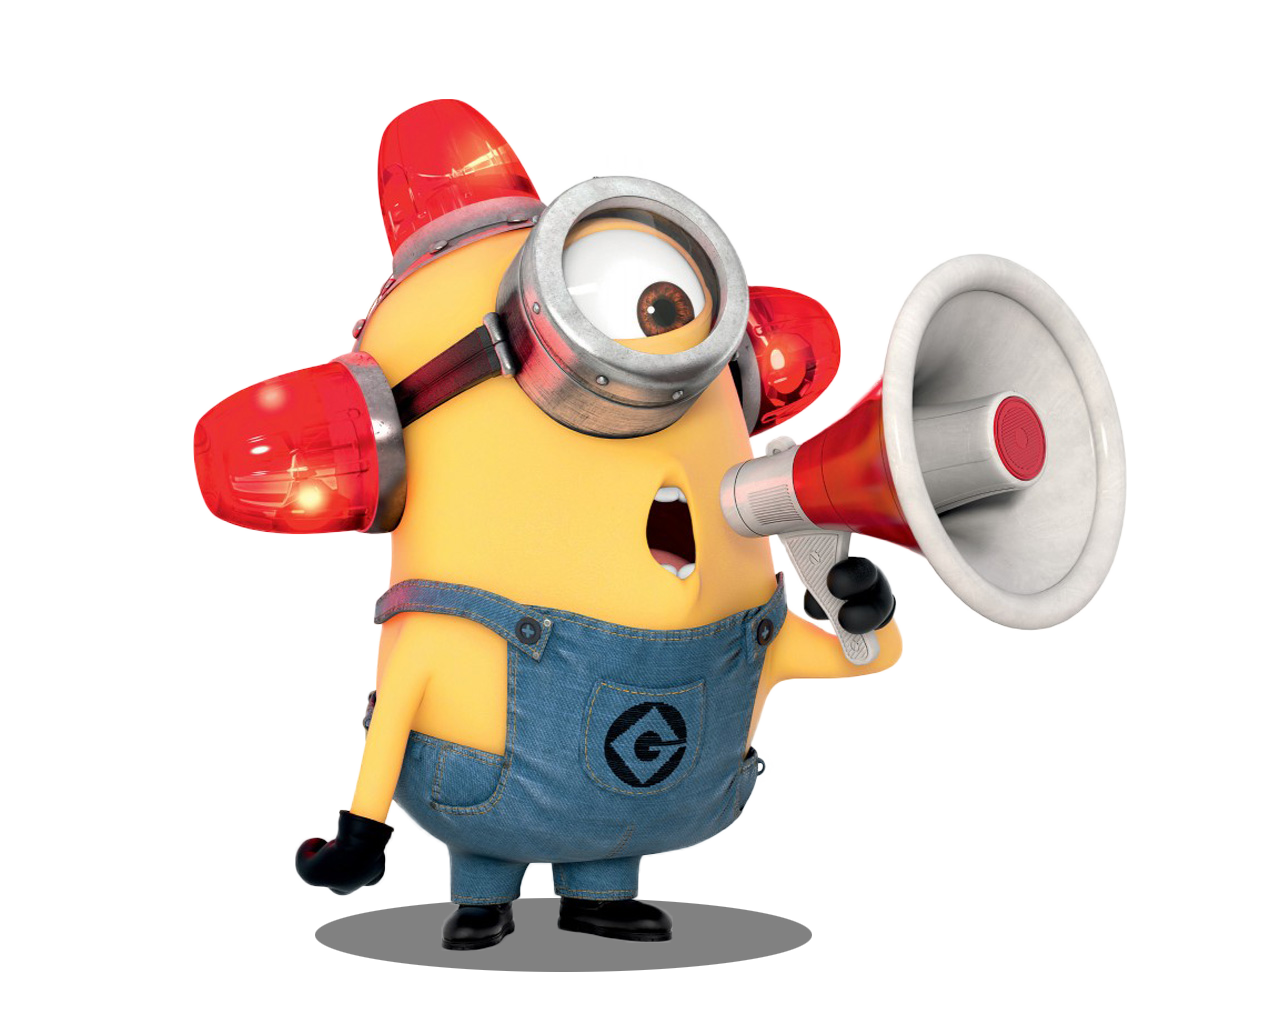 minions png the minion language despicable #9704